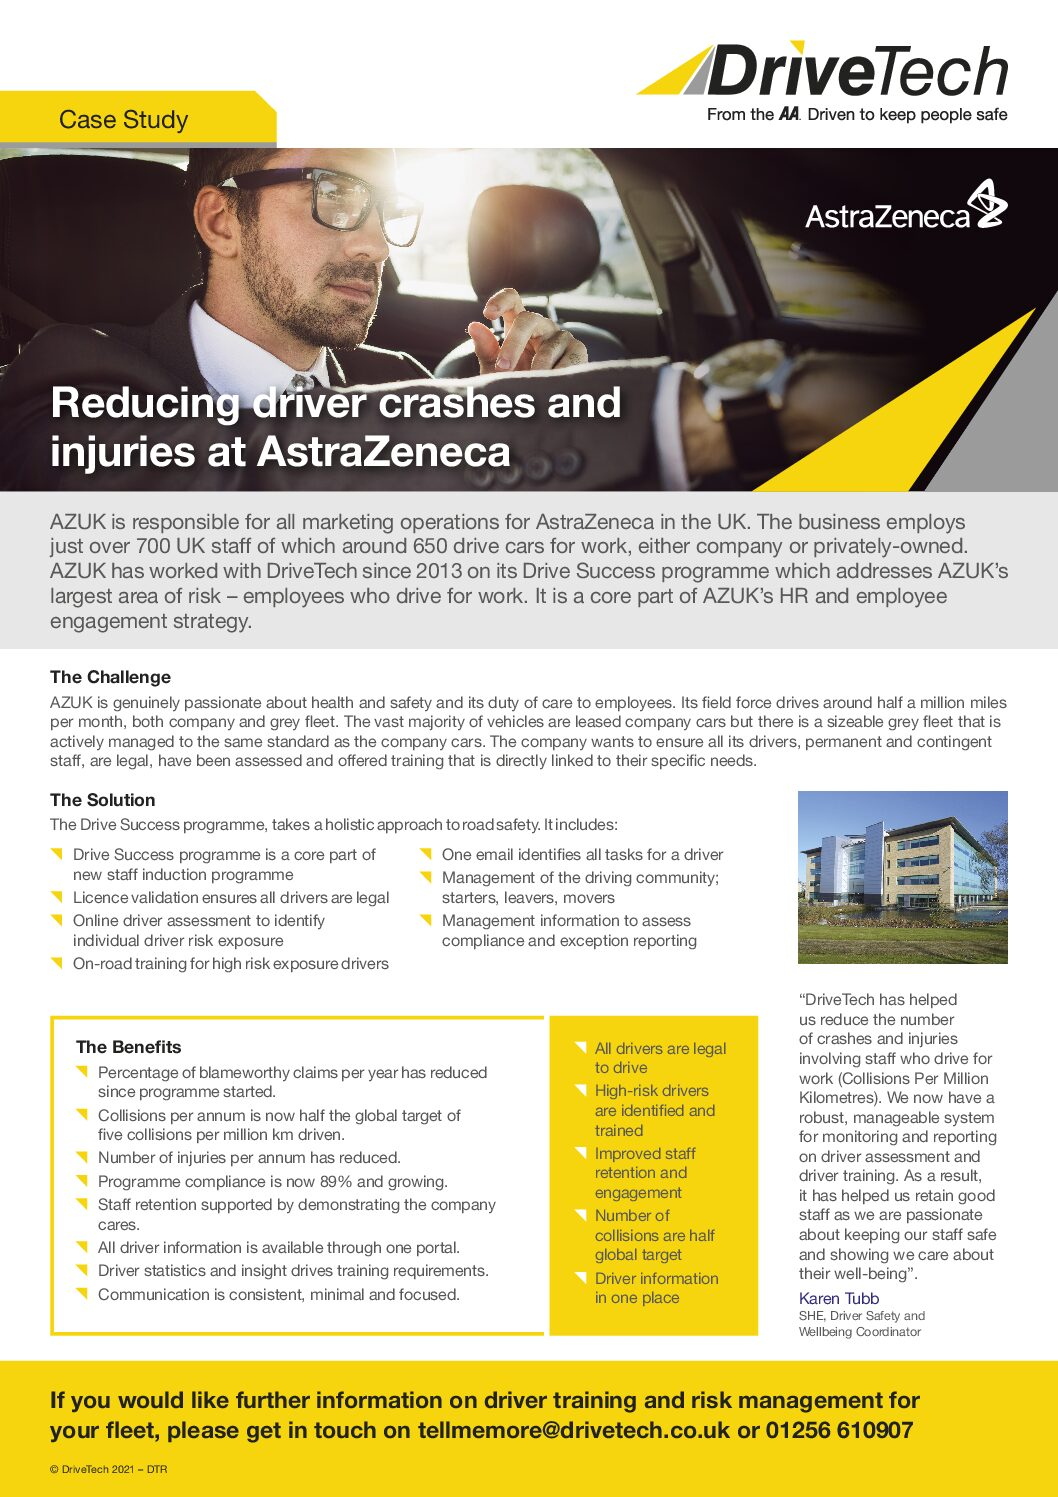 Reducing driver crashes and injuries at AstraZeneca